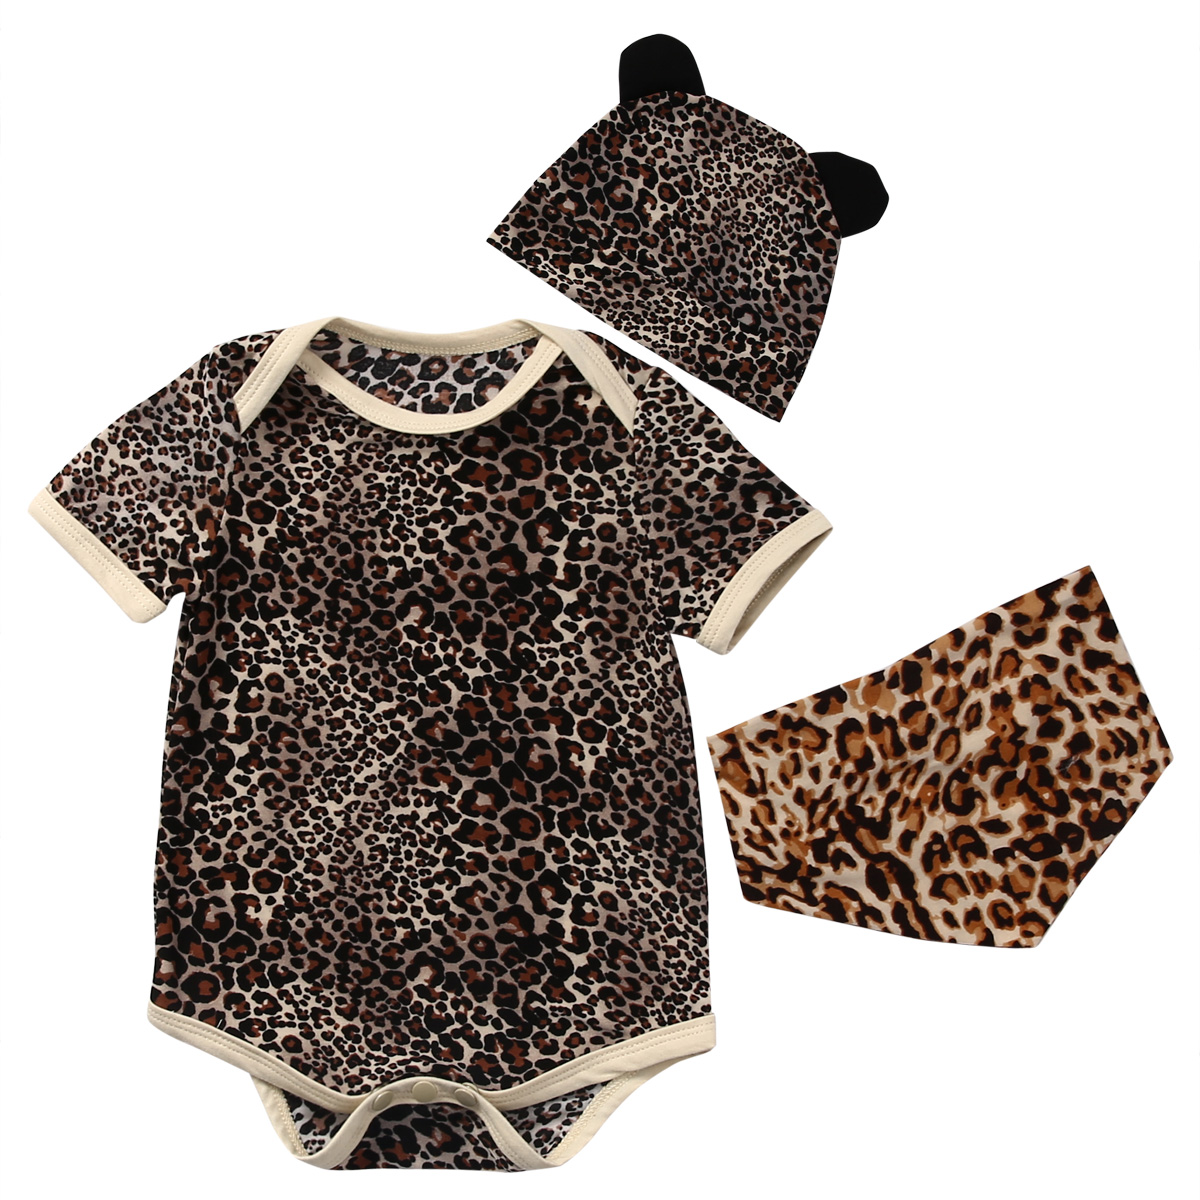 Summer Newborn baby clothing Baby boy Clothes leopard baby Bodysuit short sleeve +Hat +Bibs Outfits baby clothing 0-18M he hello enjoy baby girl clothes sets newborn short leopard grain baby bodysuit short sleeve romper hair band shoes